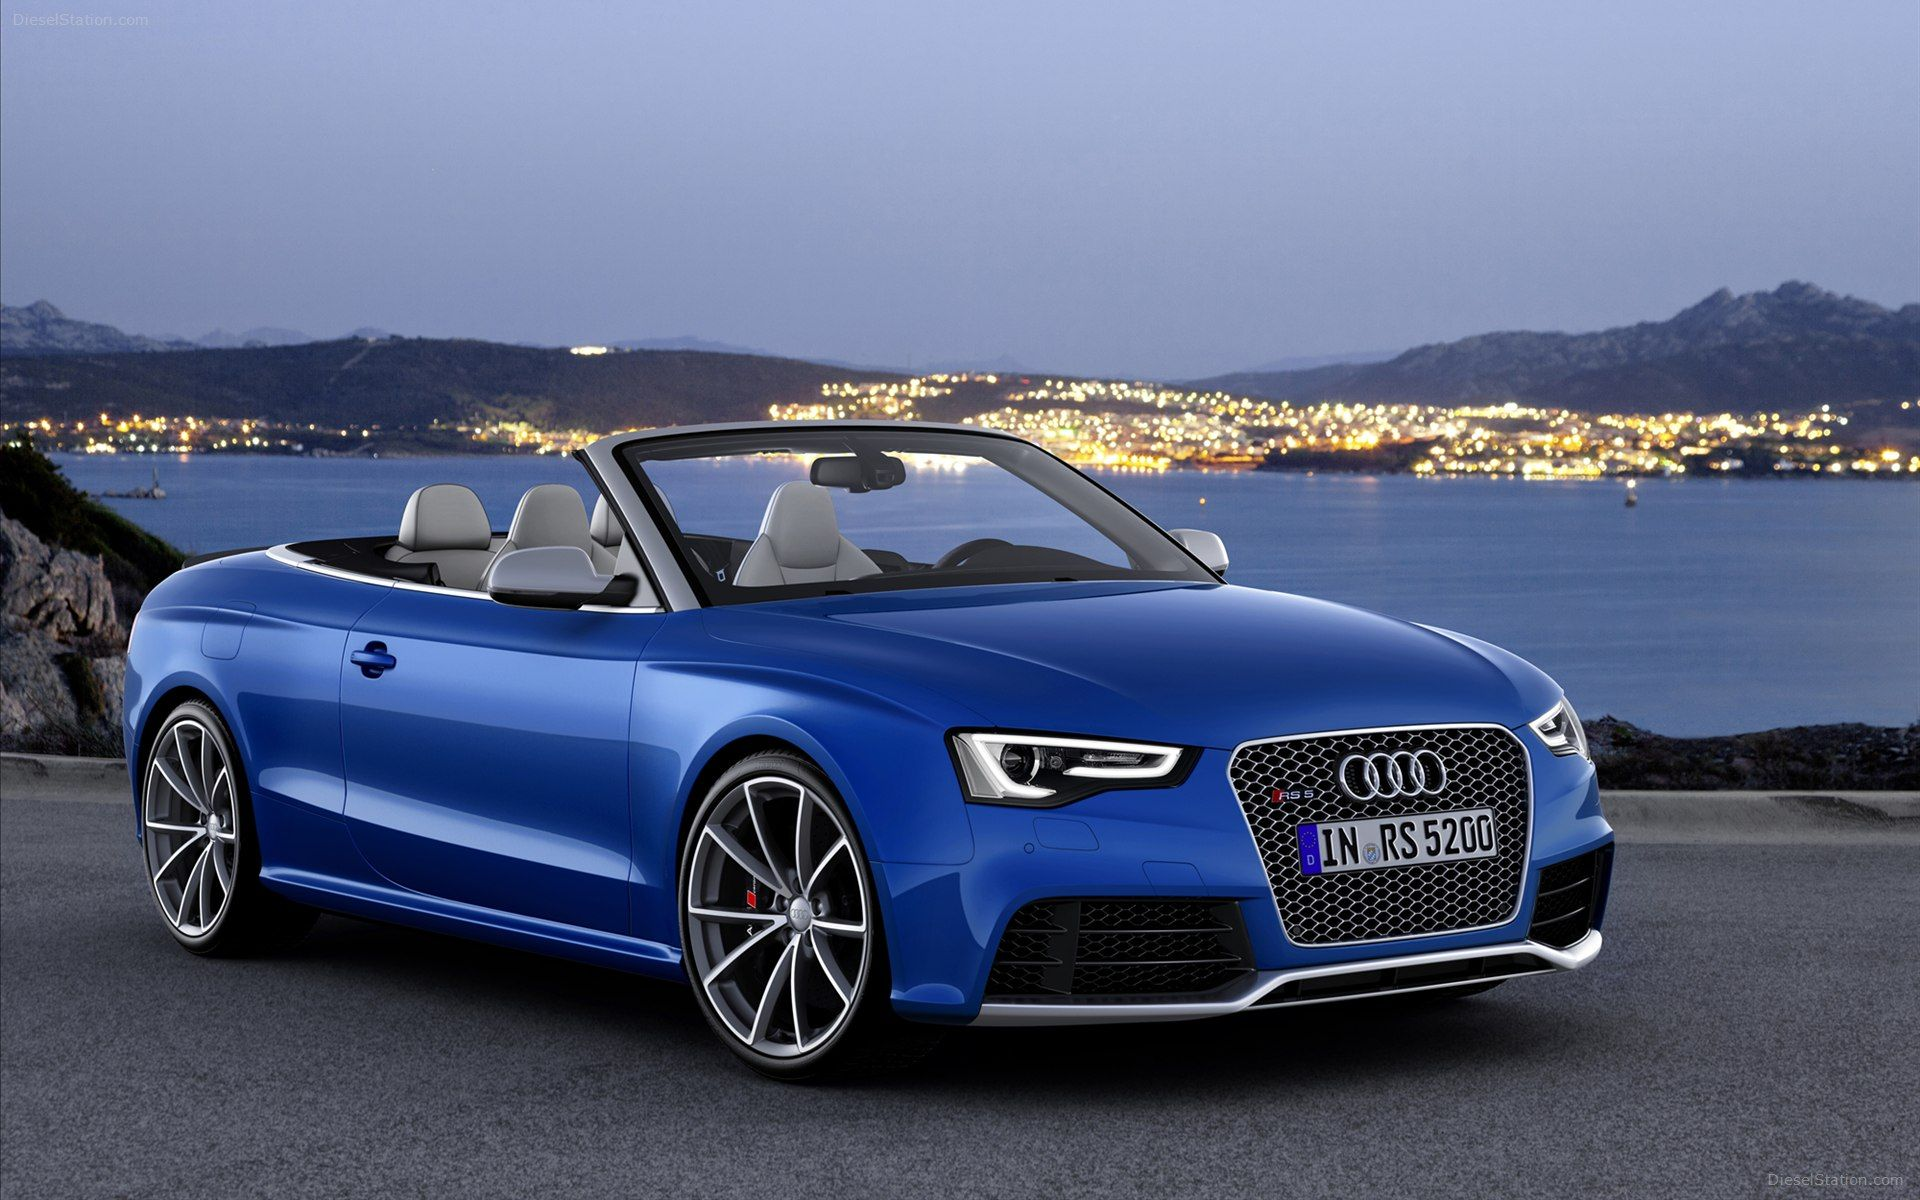 Superbe Audi S5 Convertible | 2014 Audi RS5 Cabriolet U2013 Strike Off The Road With Audi  RS5